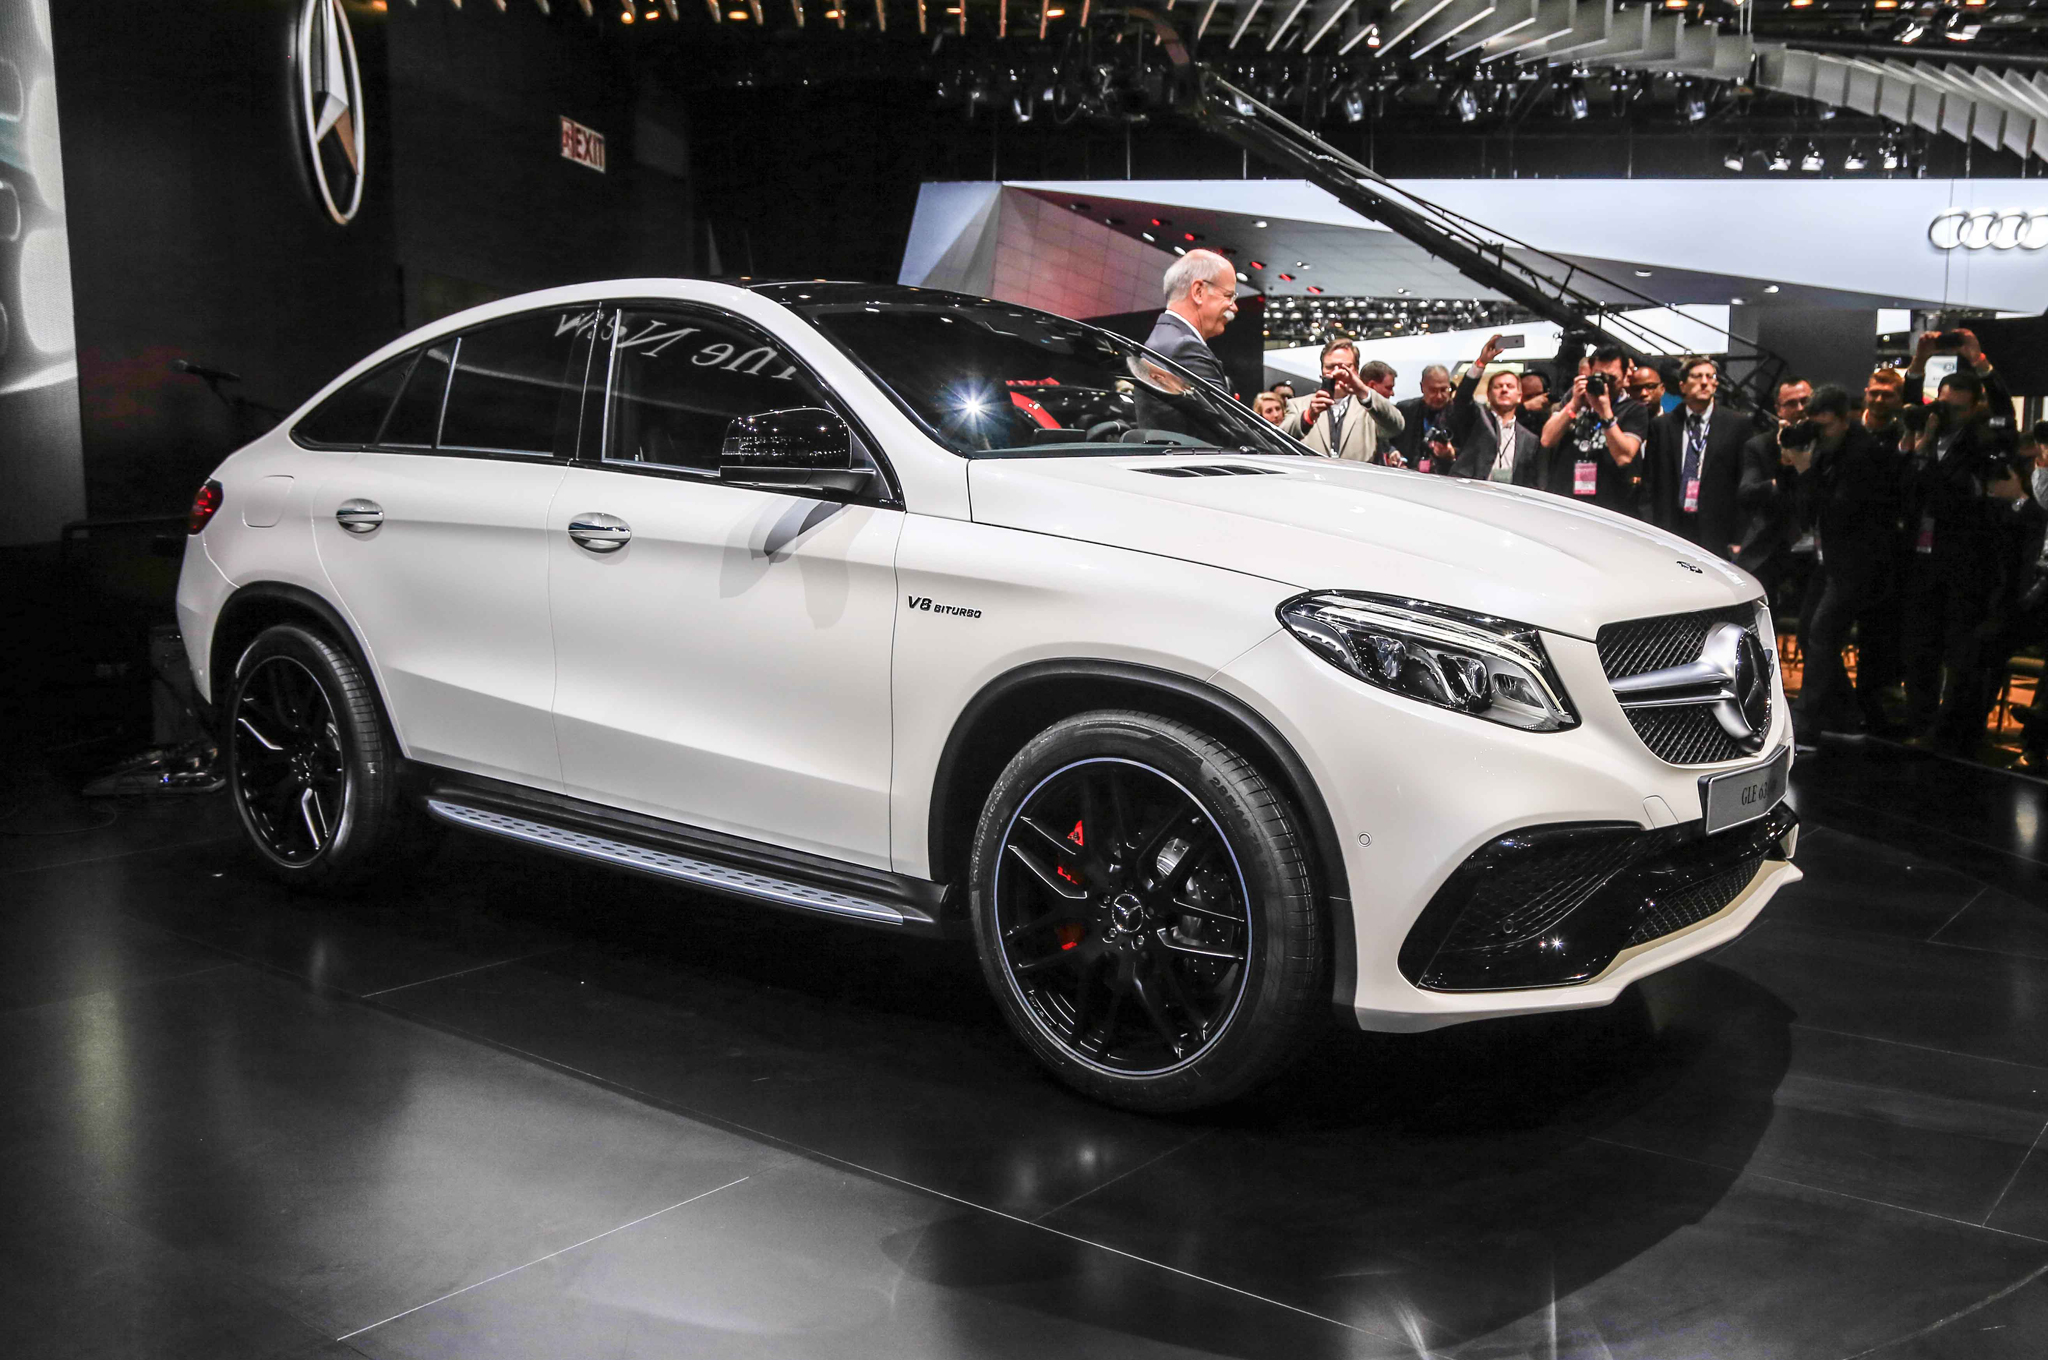 2016 mercedes amg gle63 s 4matic cars exclusive videos for Mercedes benz amg hatchback price